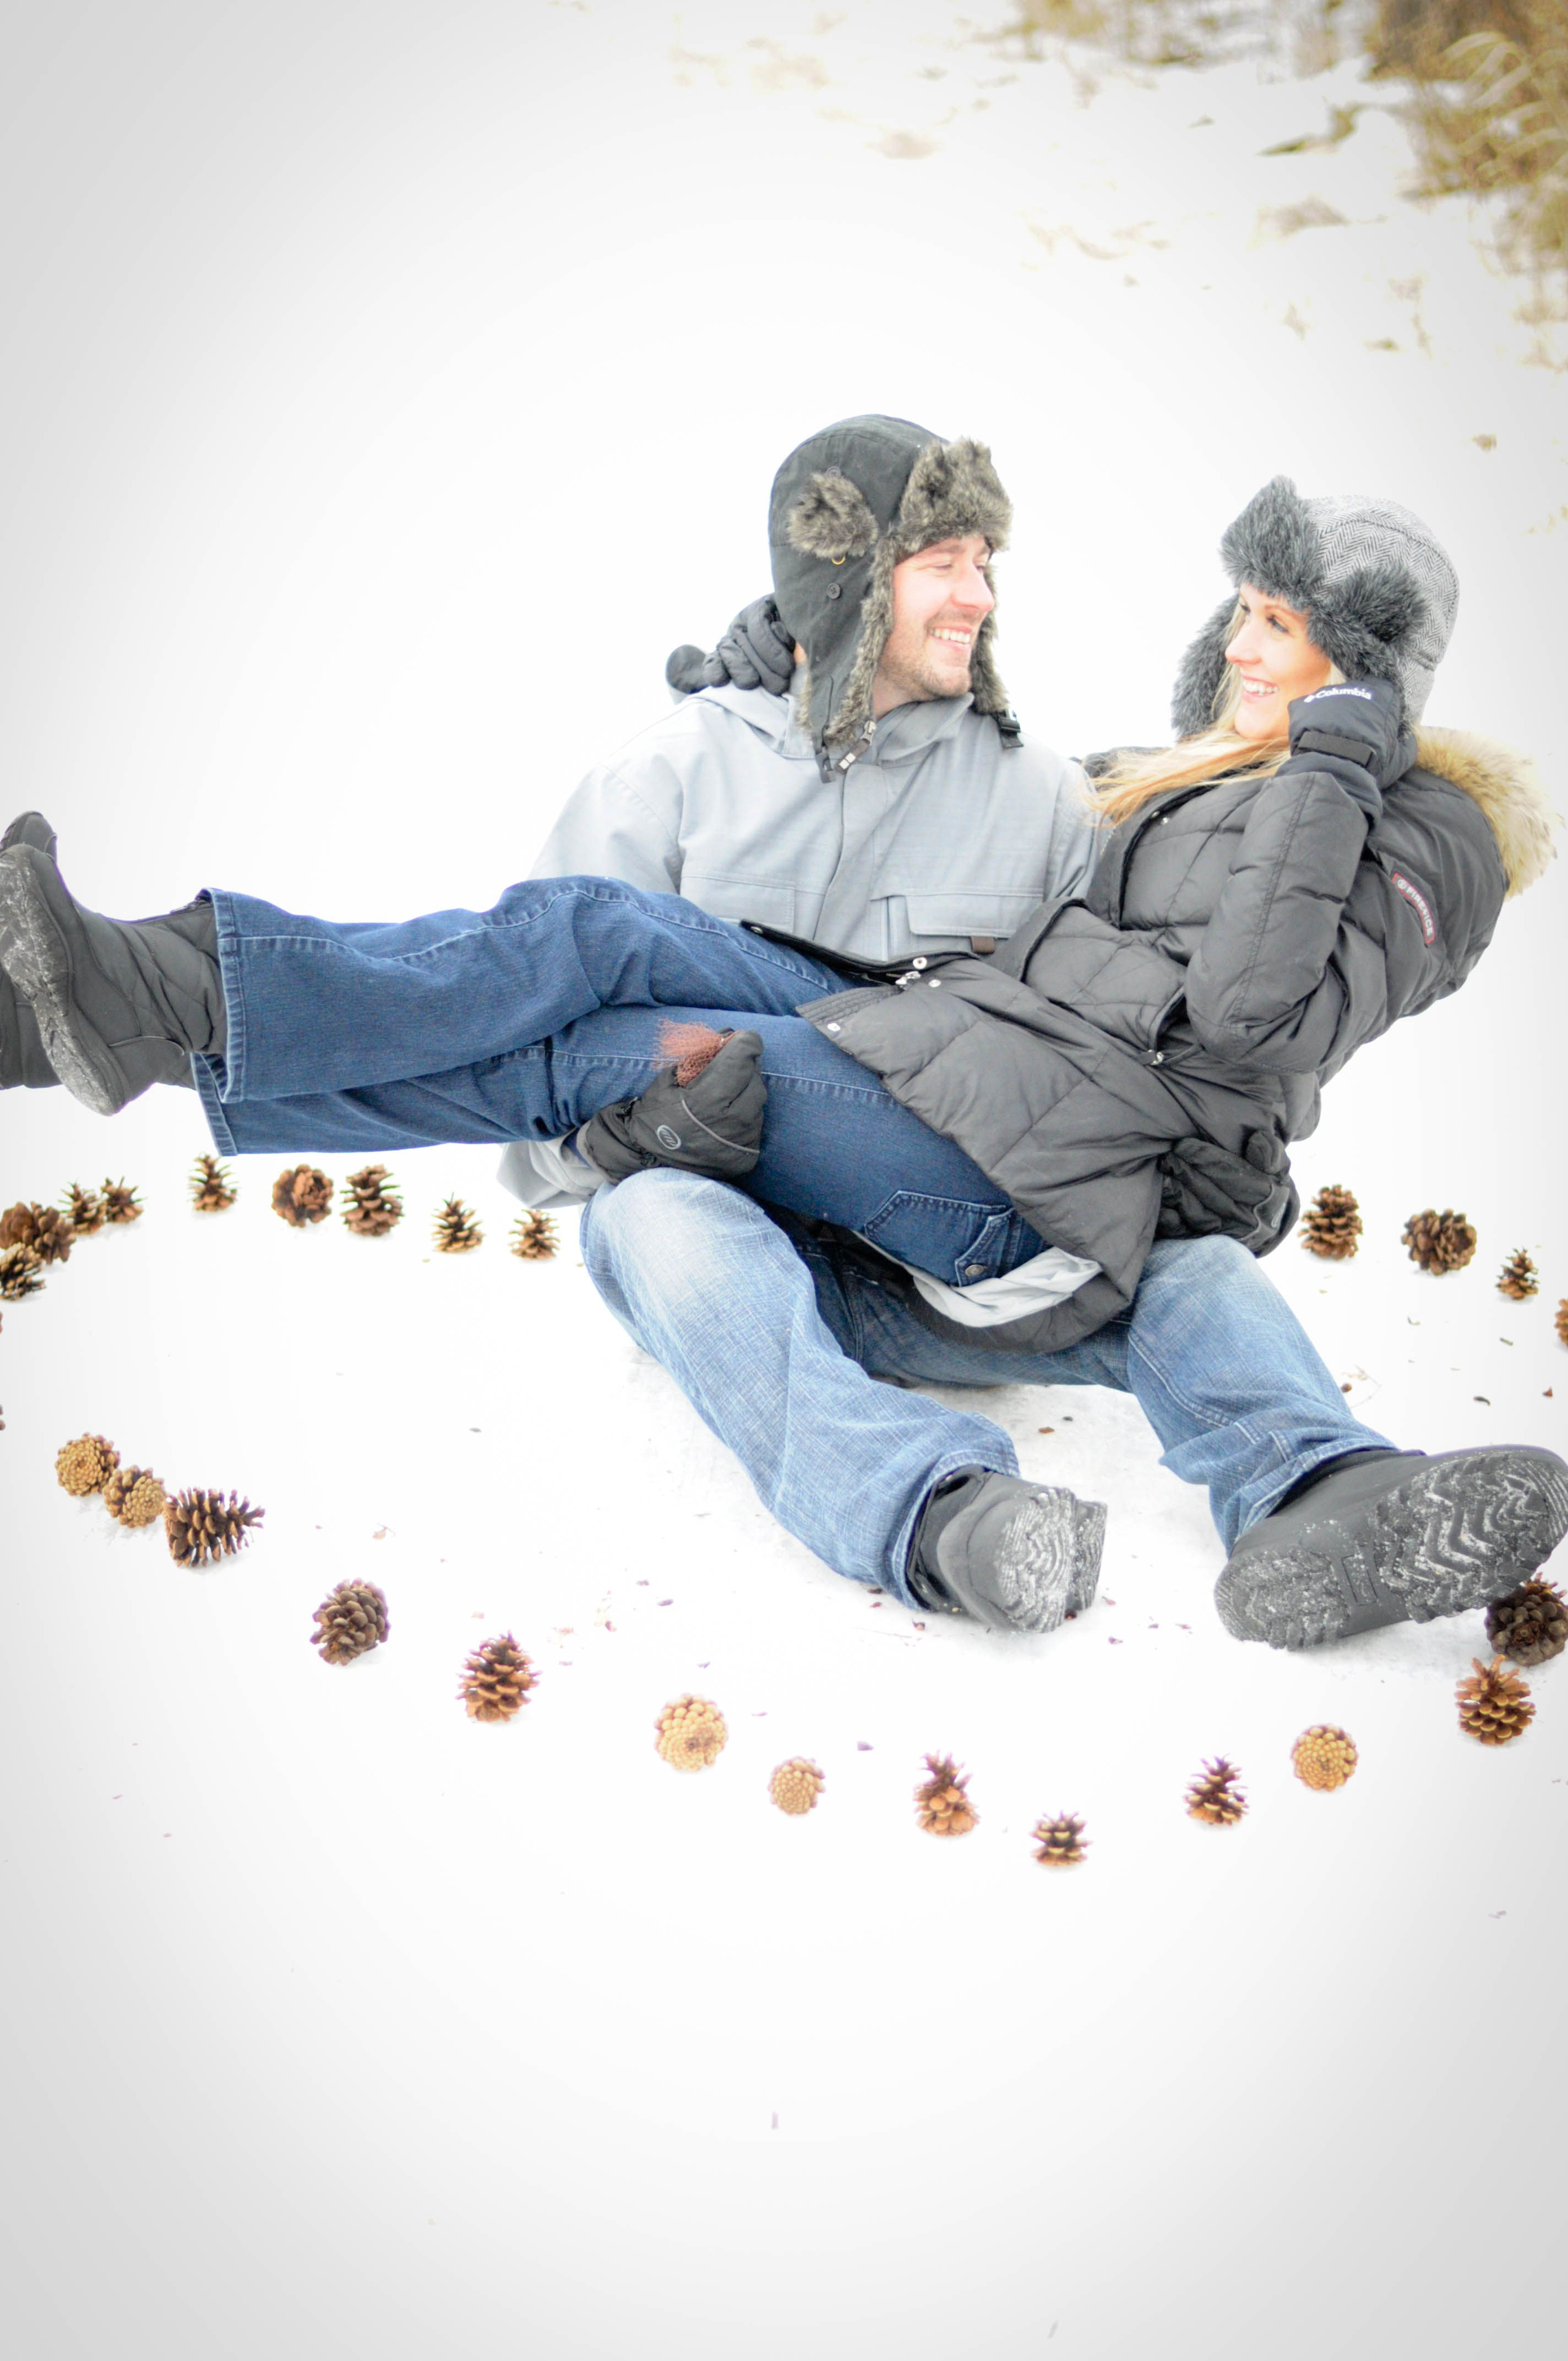 Winter Engagement Photo Session Ideas | Props | Prop | Photography | Clothing Inspiration| Fashion | Pose Idea | Poses | Romantic Couple